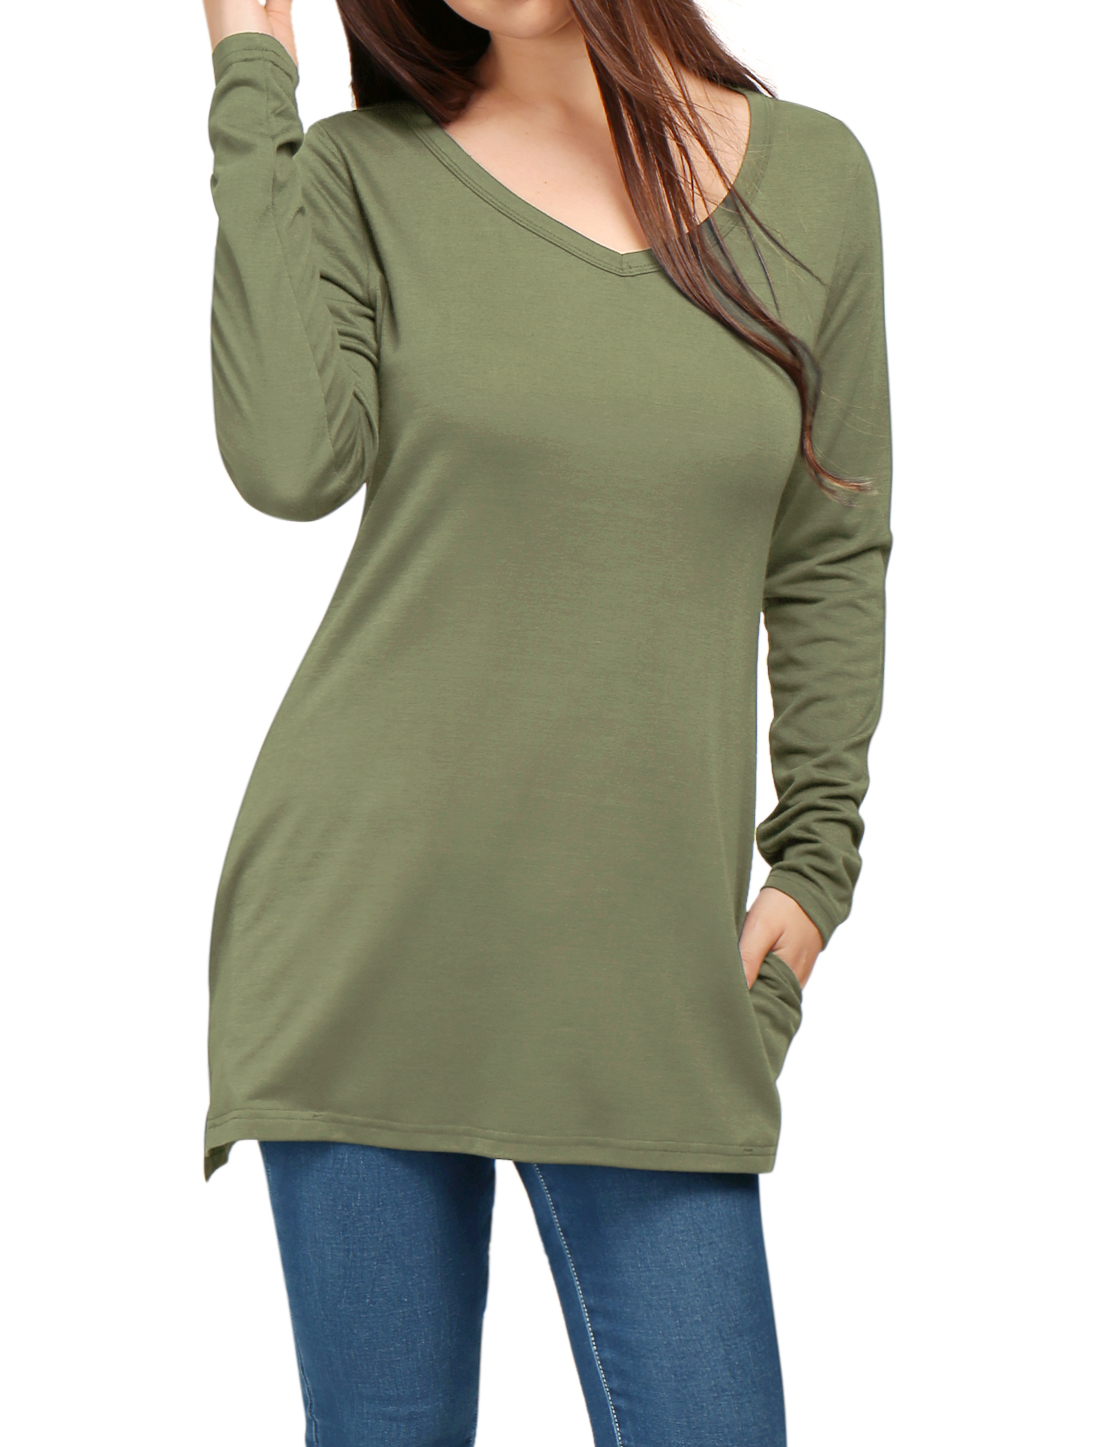 Lady V Neck Split Side Design Fashion Casual Tunic Top Green S